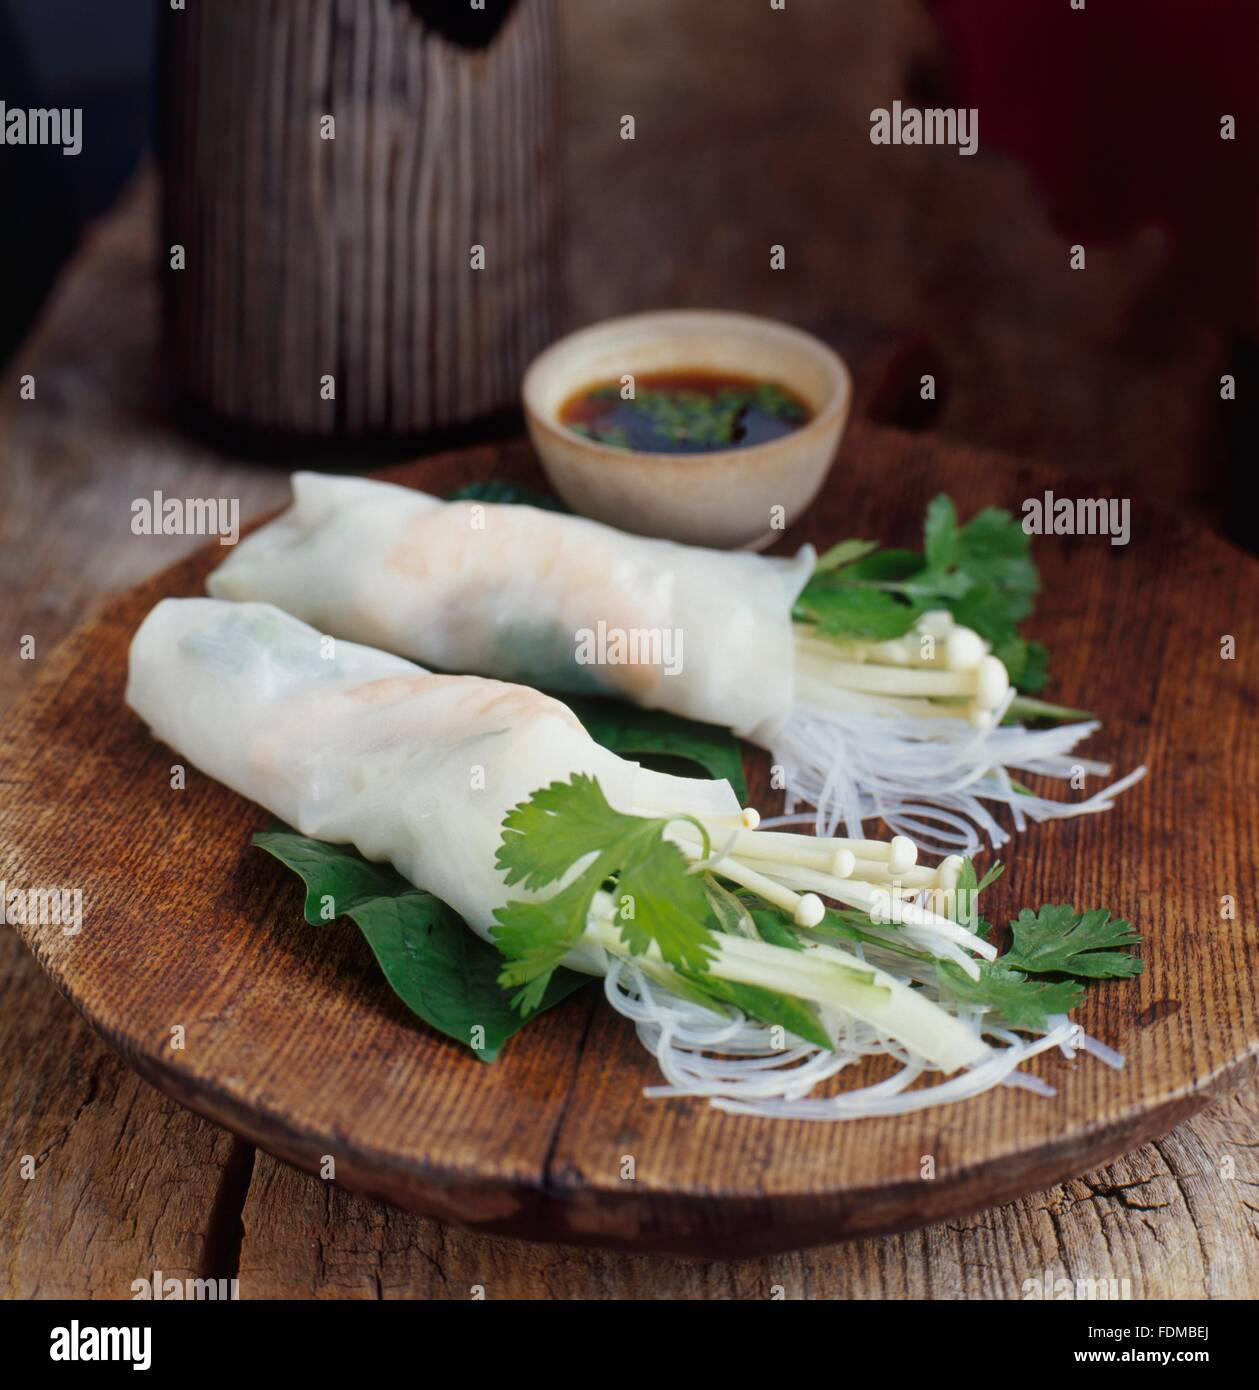 Rice paper wrappers stuffed with enoki mushrooms, prawns and herbs, served on wooden board, with a dip - Stock Image